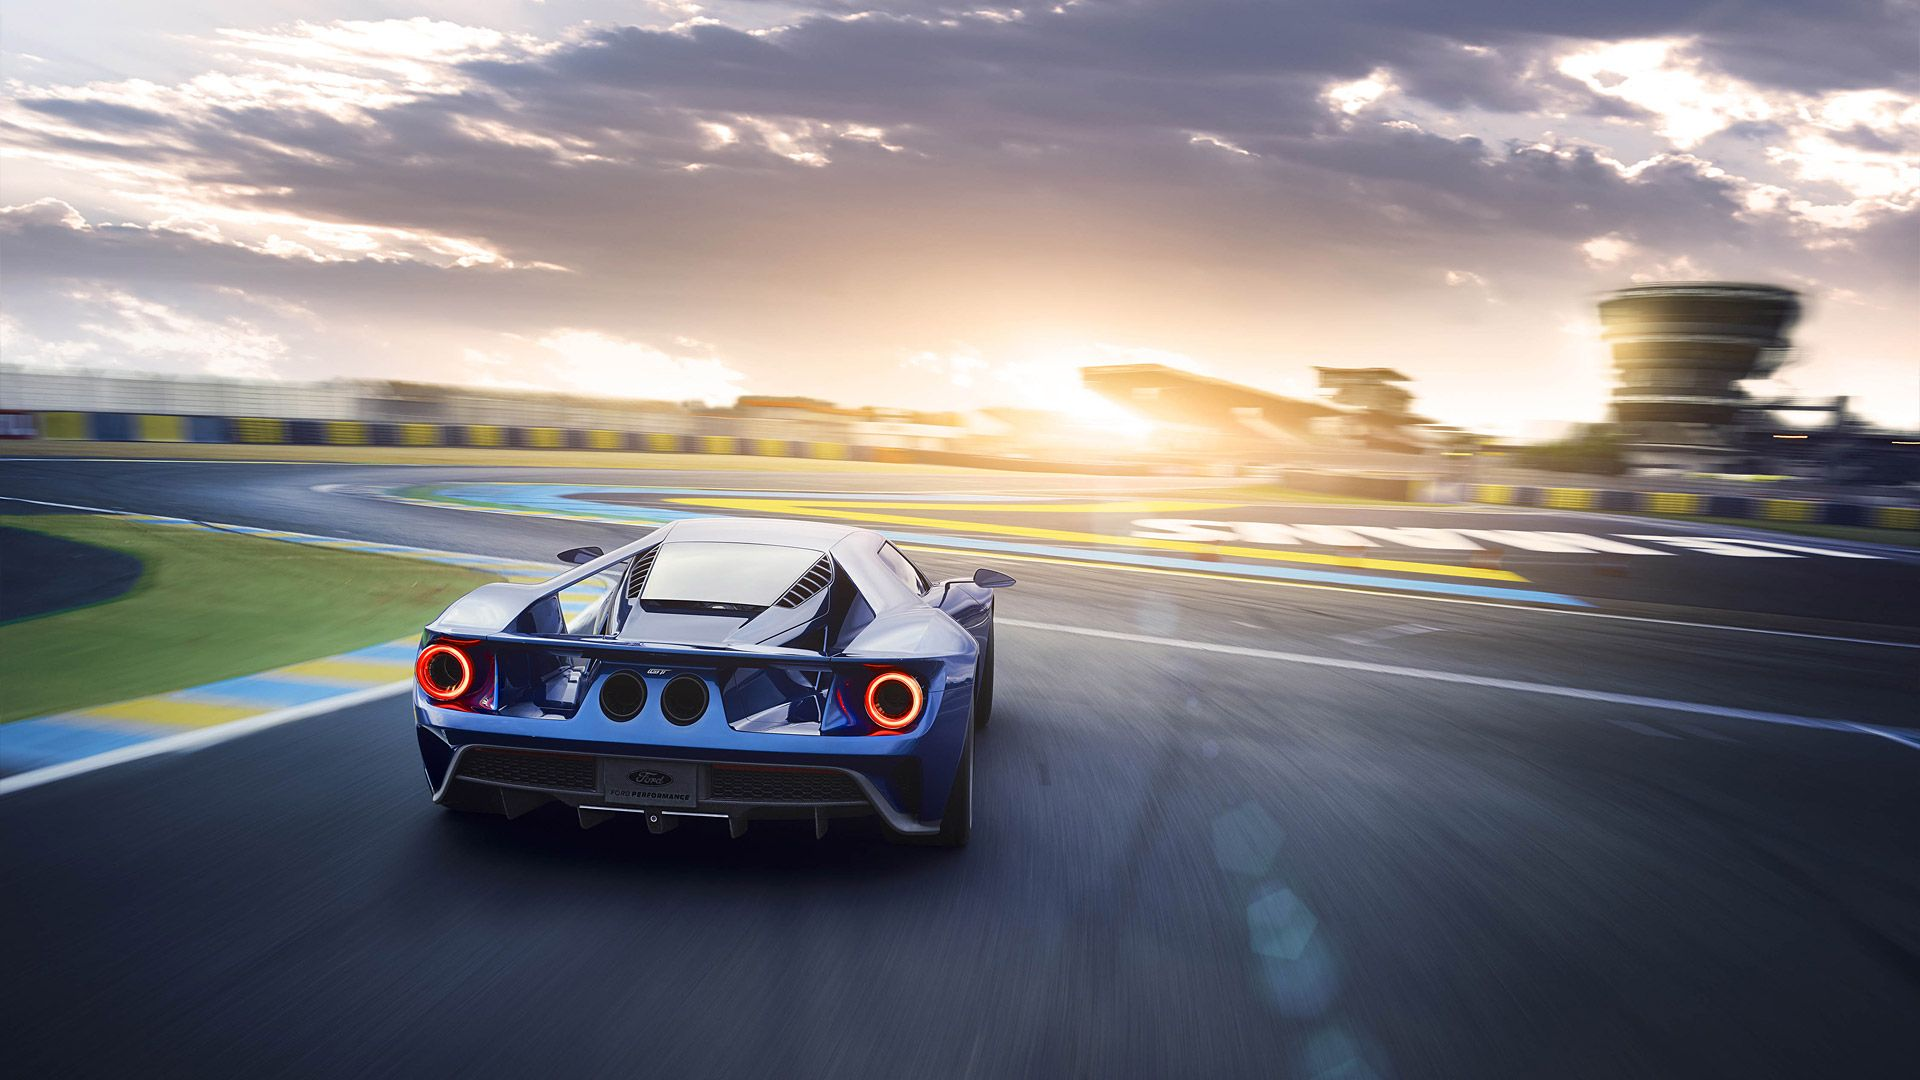 Ford Gt Wallpapers Top Free Ford Gt Backgrounds